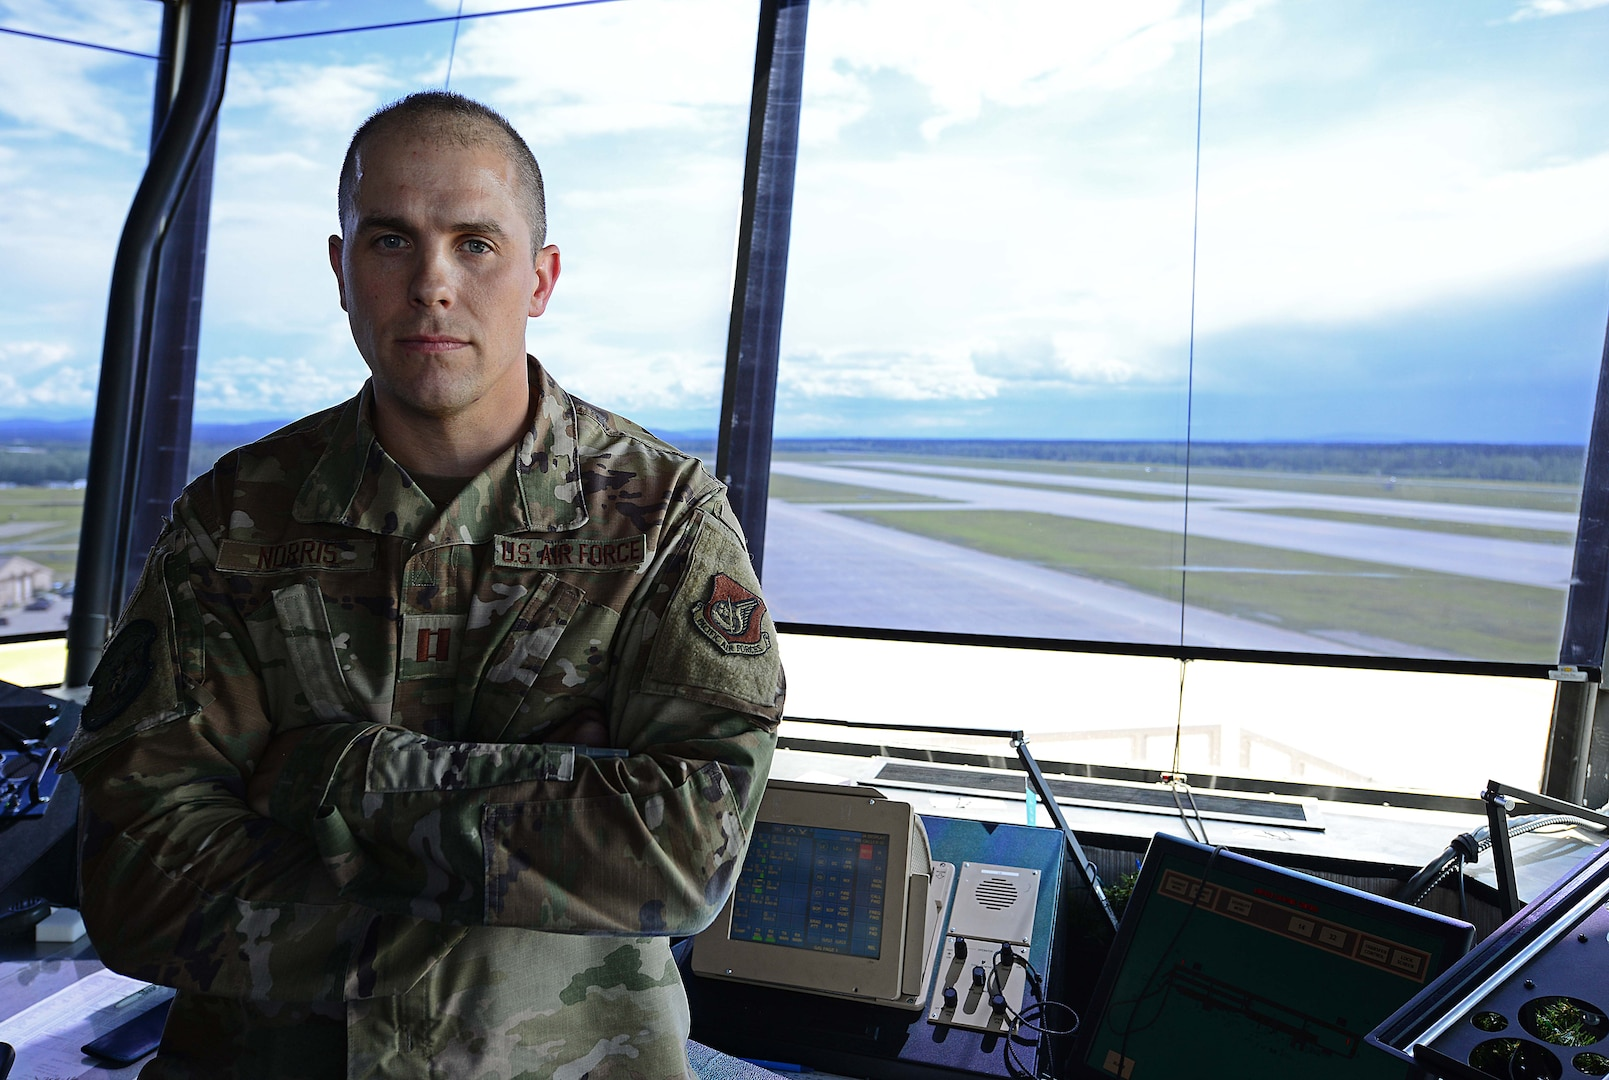 Climbing the tower of success; Operations Support Squadron Officer Wins Distinguished Award